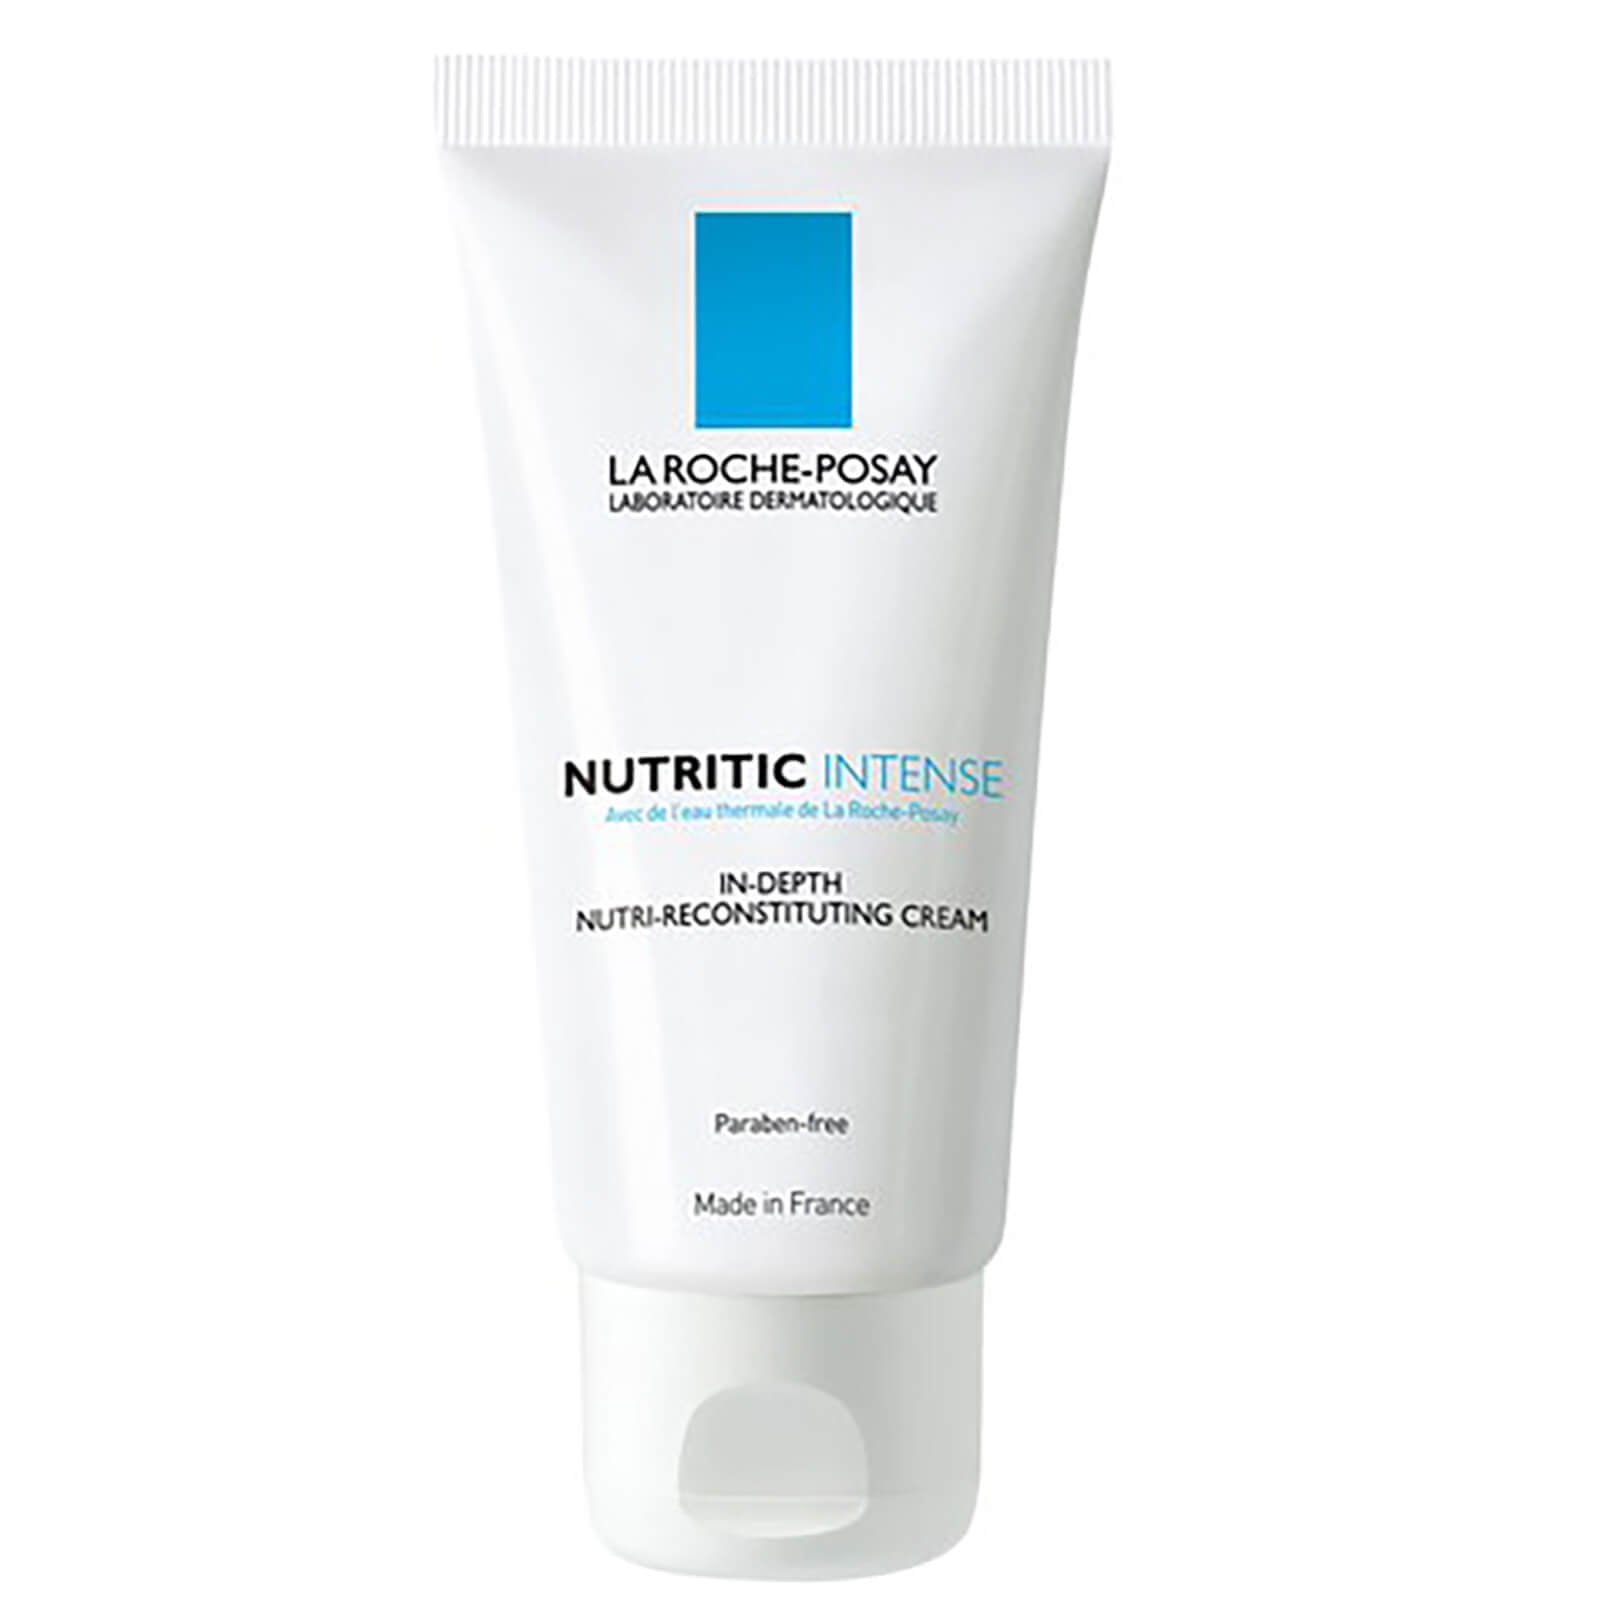 La Roche Posay Nutritic Intense for Dry Skin 50ml